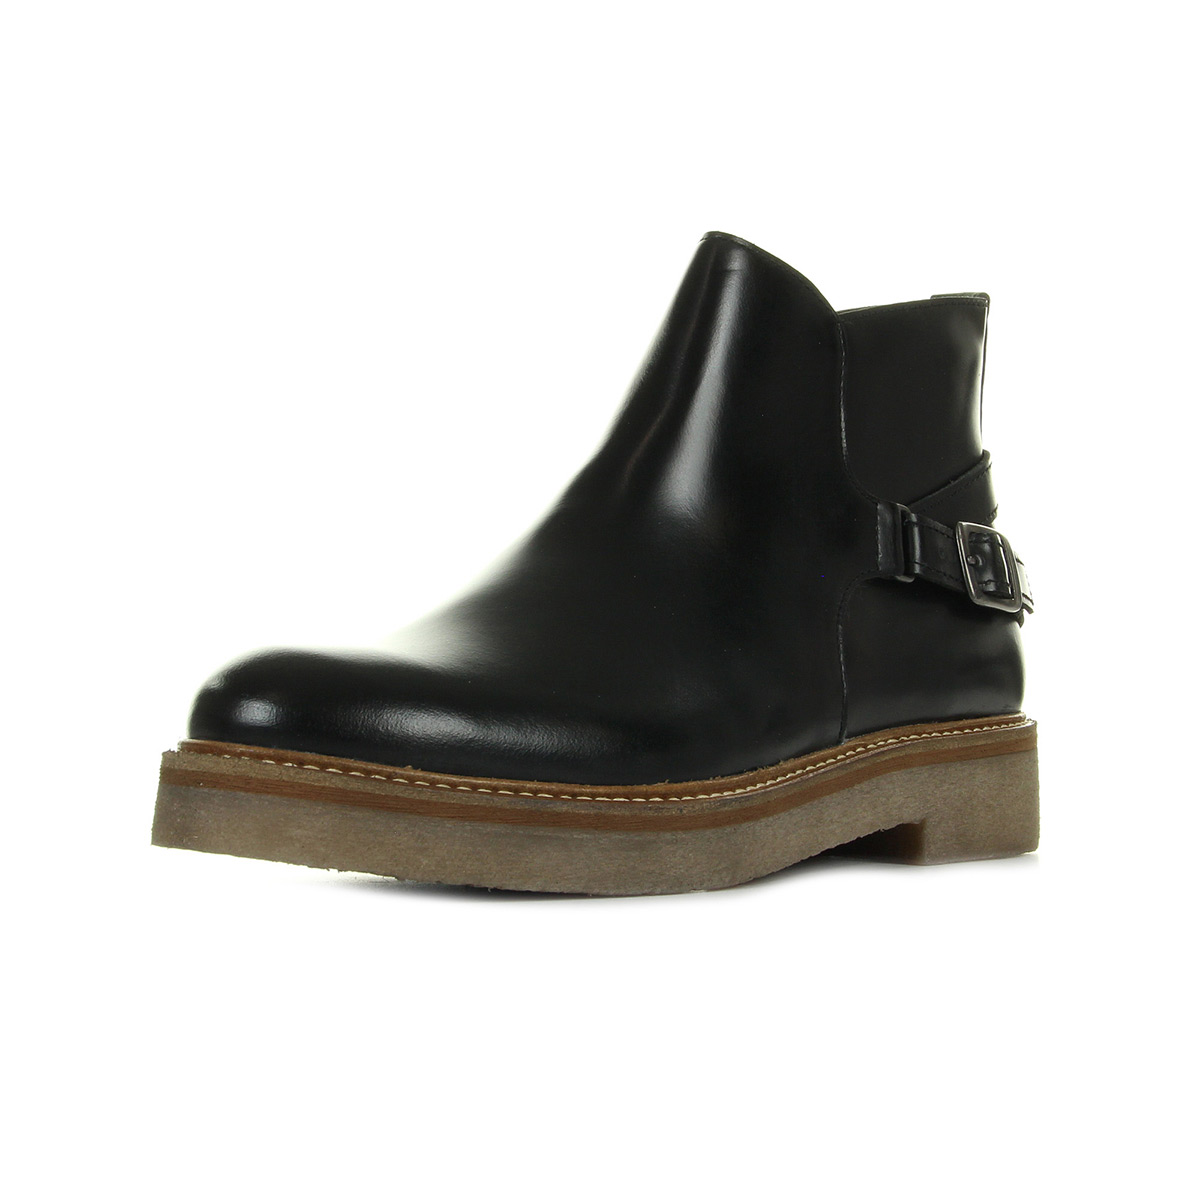 Atlantic Heights Chelsea, Bottes Femme, Noir (Jet Black), 38 EUTimberland